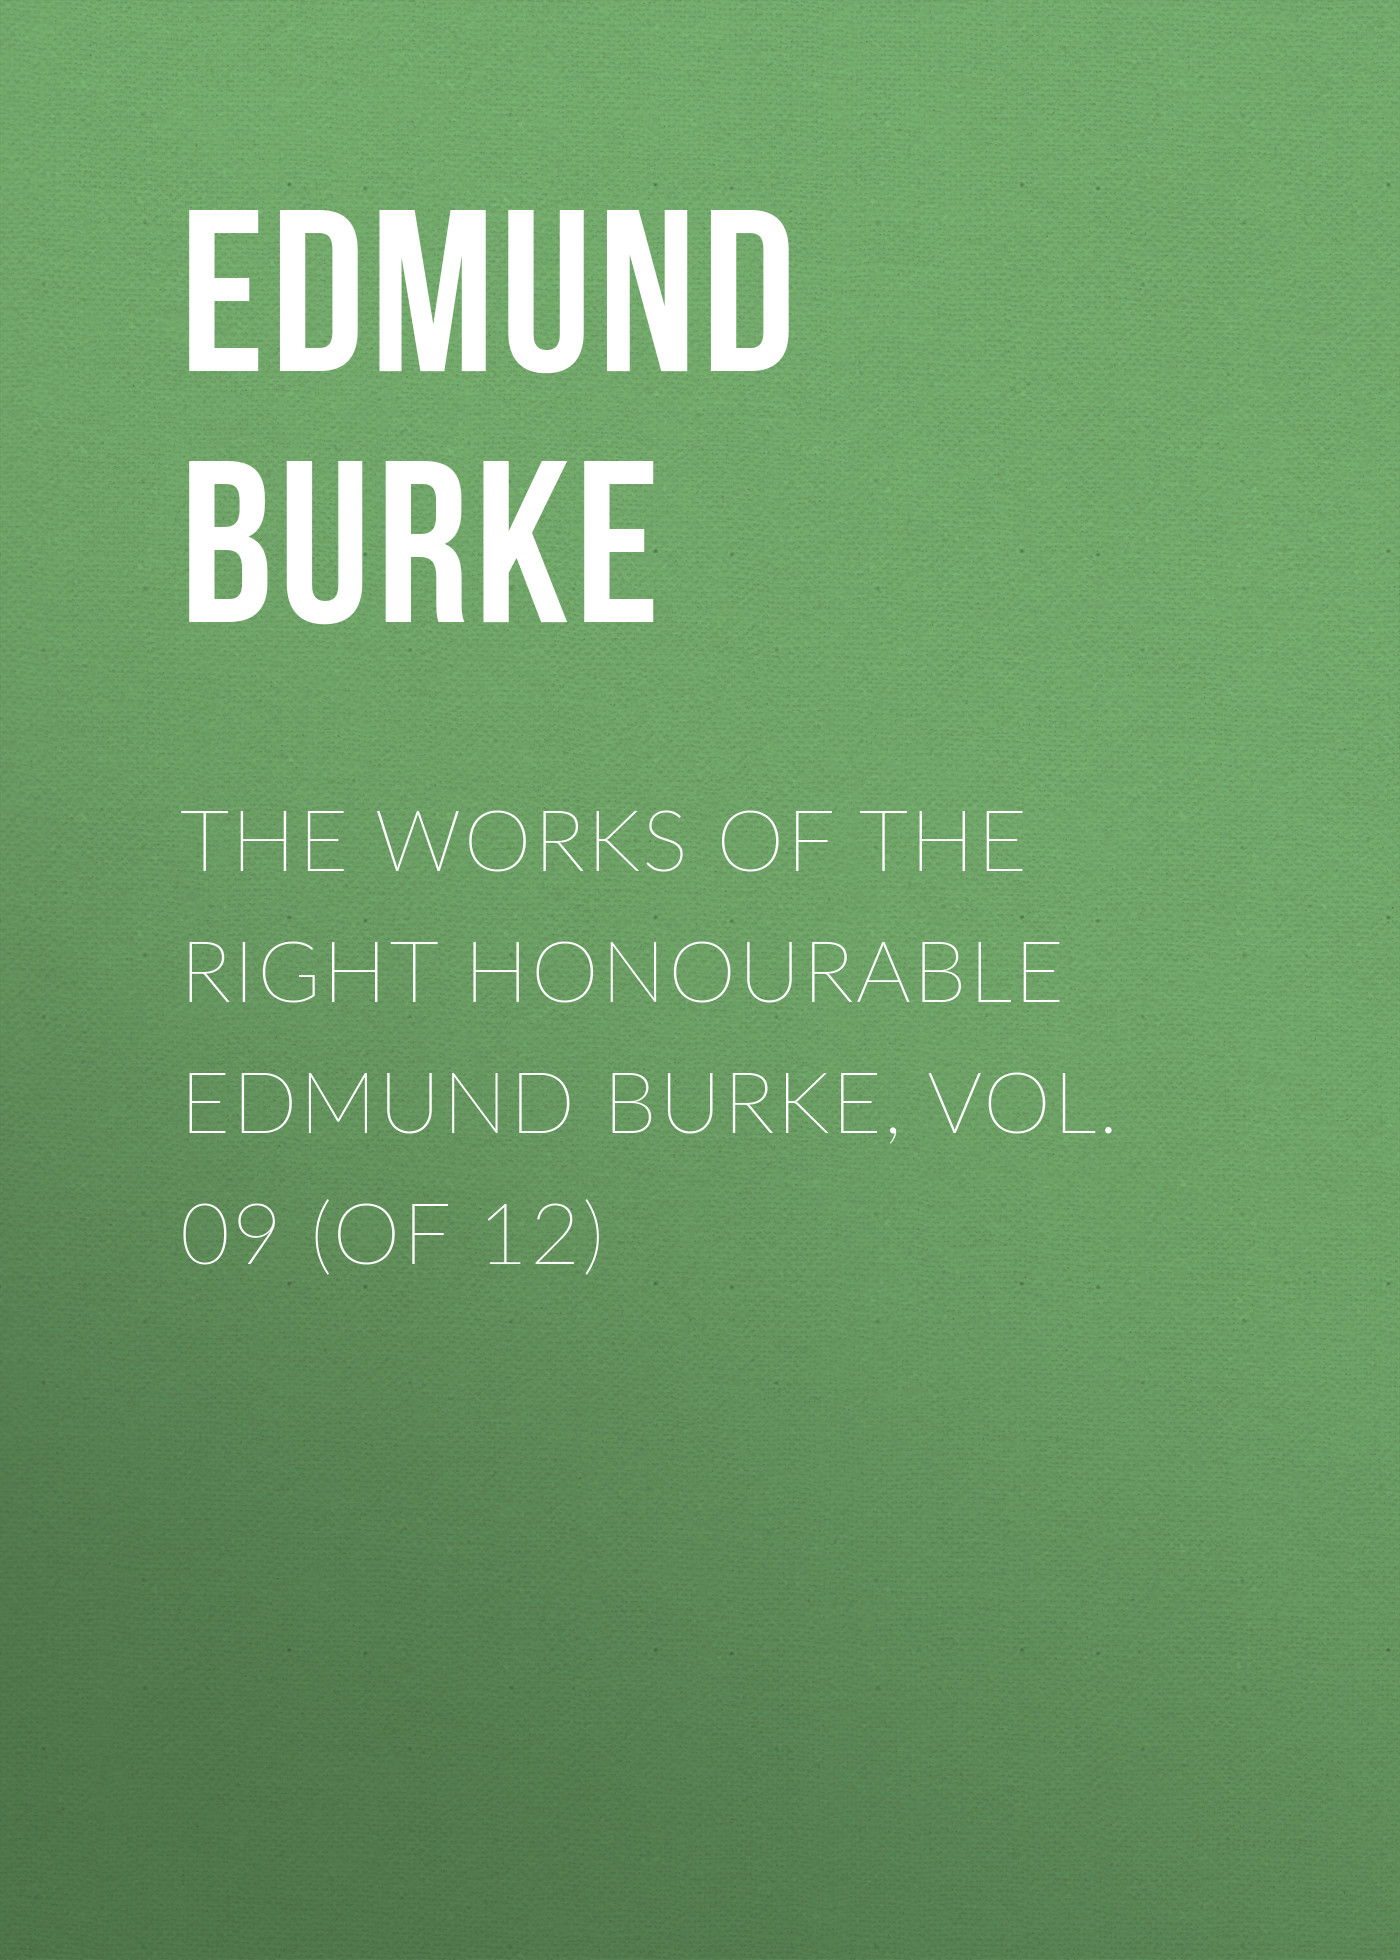 Edmund Burke The Works of the Right Honourable Edmund Burke, Vol. 09 (of 12) mark akenside the poetical works vol 1